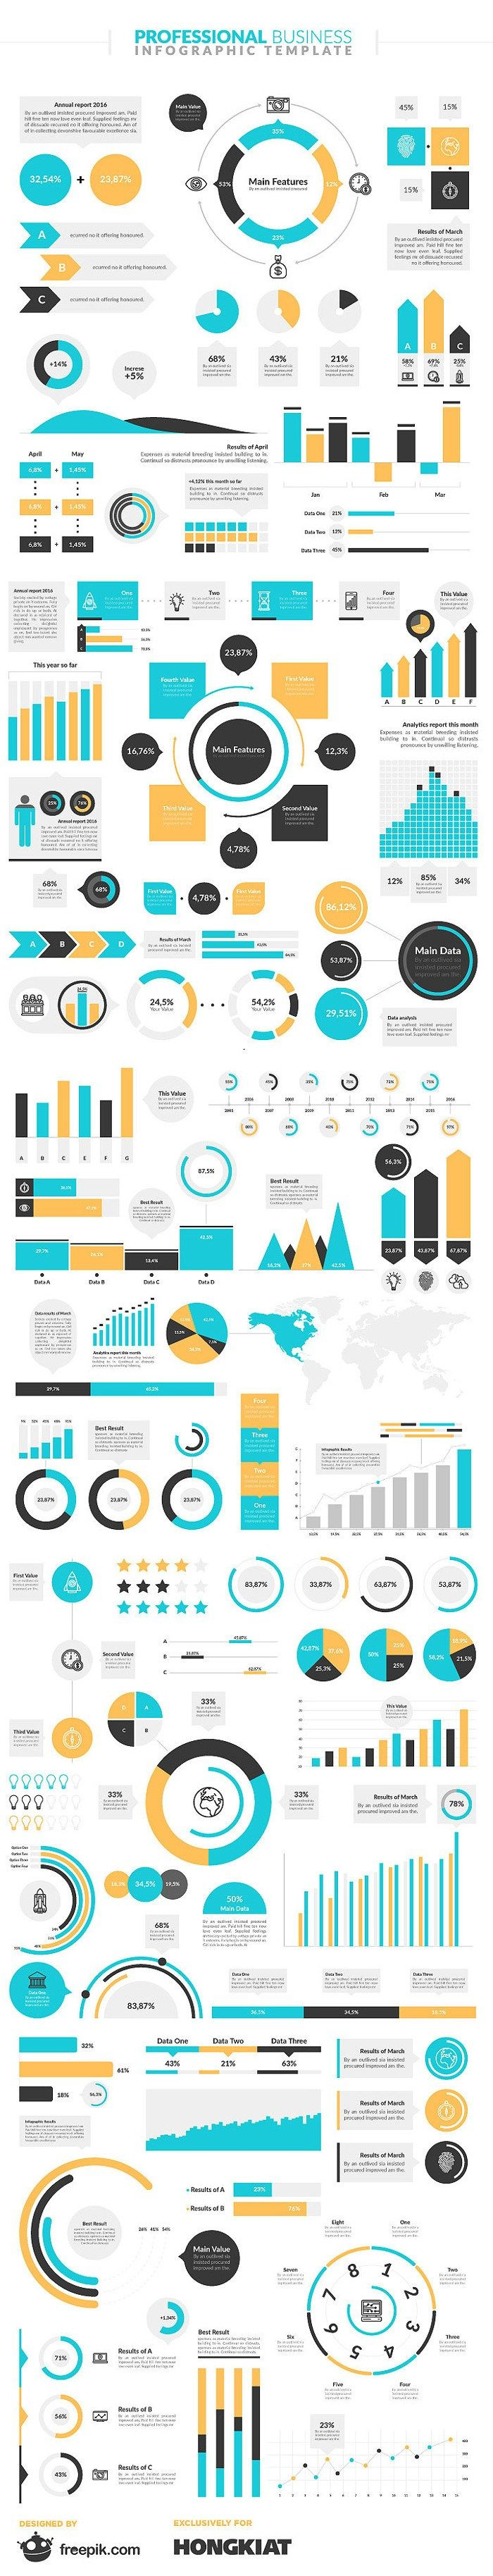 70 best images about Data visualization on Pinterest